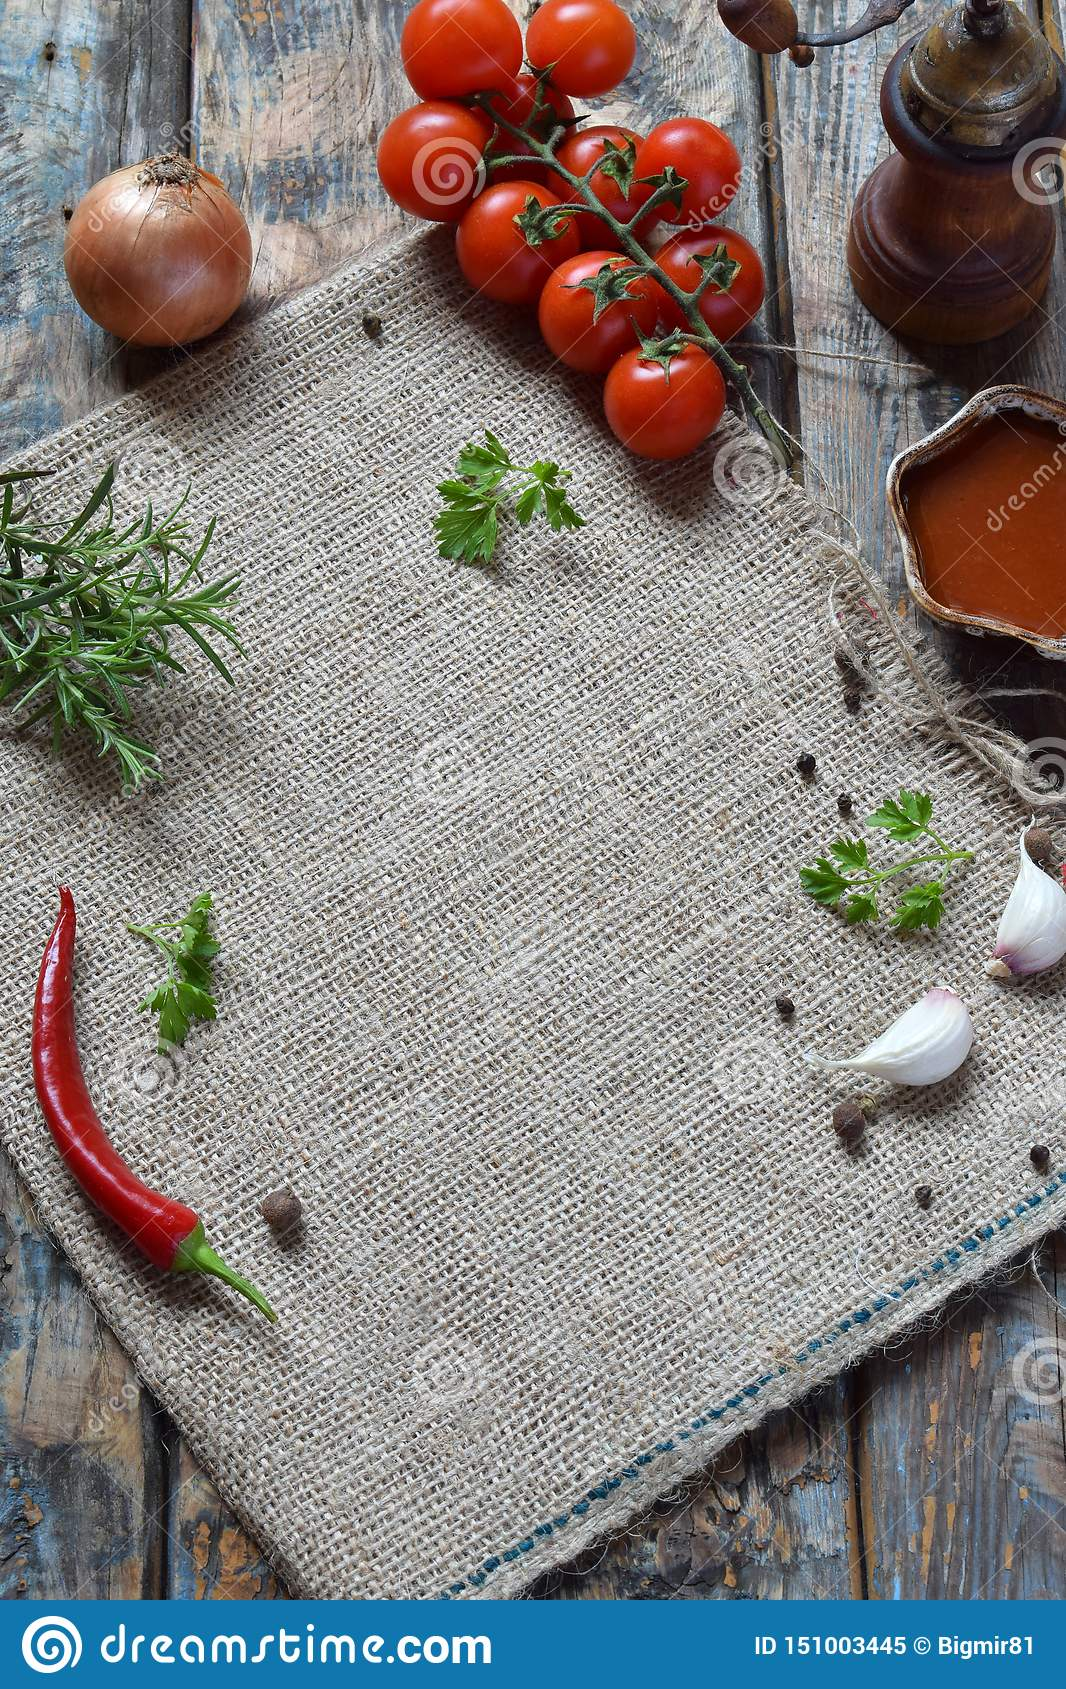 Rustic composition with pepper mill, tomato souce, fresh herbs, vegetables and spices. Country style. Baking or cooking background